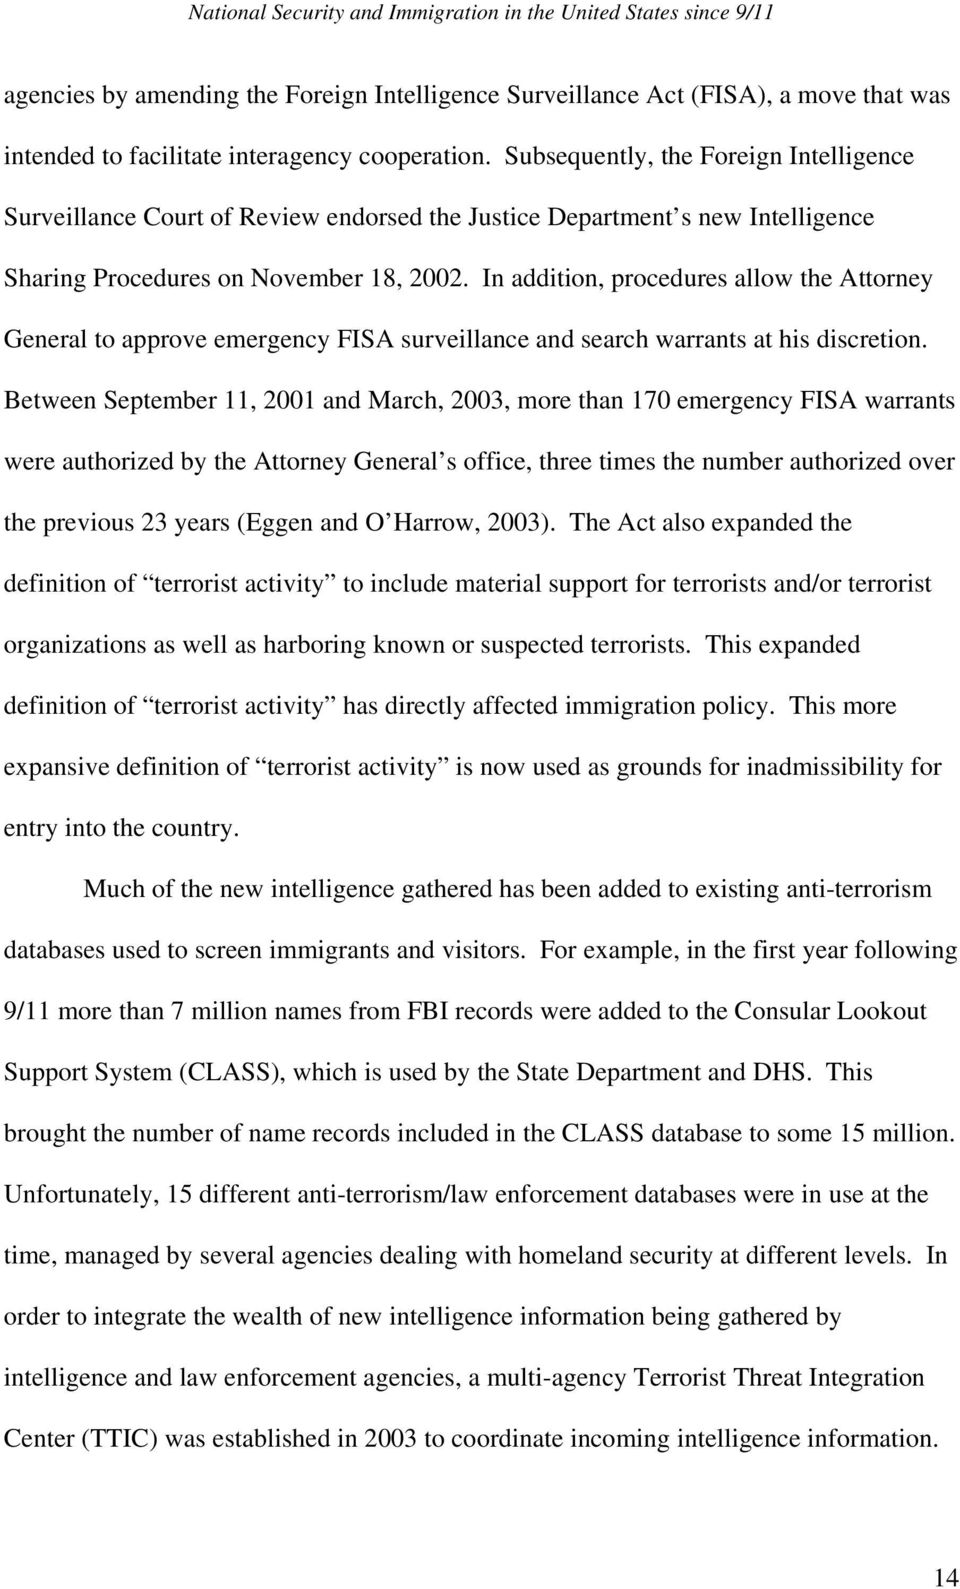 In addition, procedures allow the Attorney General to approve emergency FISA surveillance and search warrants at his discretion.